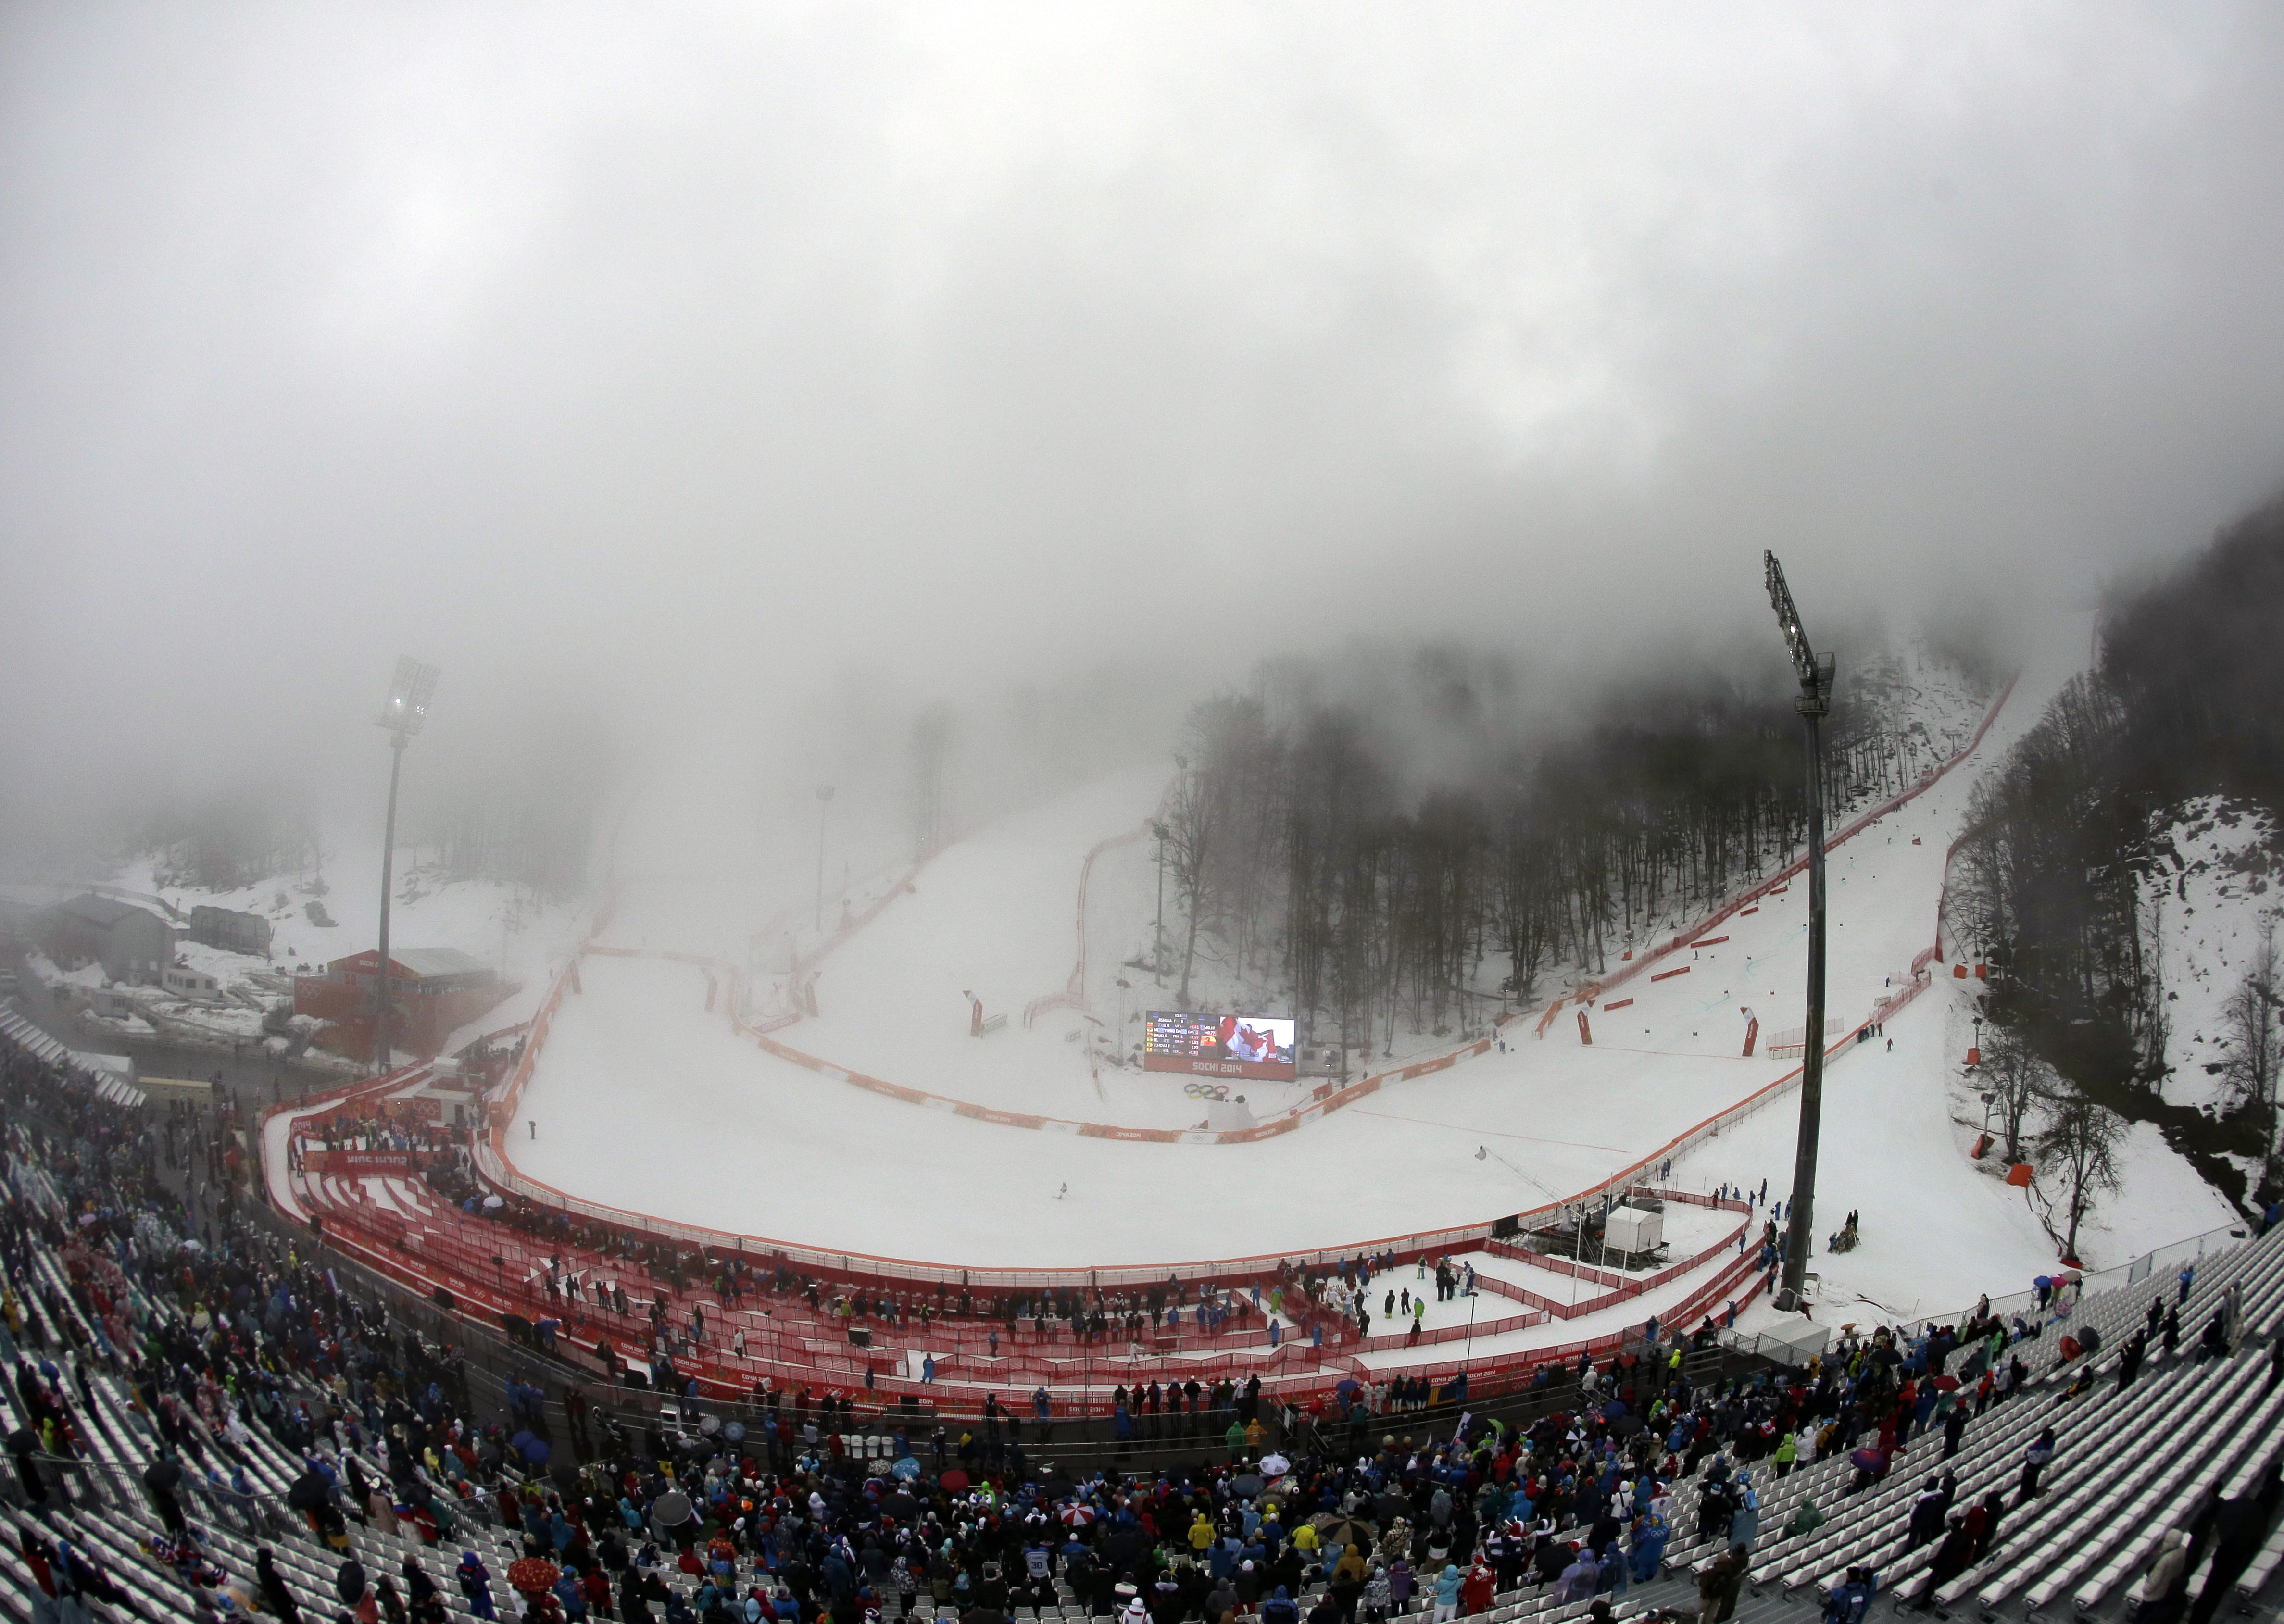 Fog blankets the finish area of the Alpine ski course during the second run in the women's giant slalom.